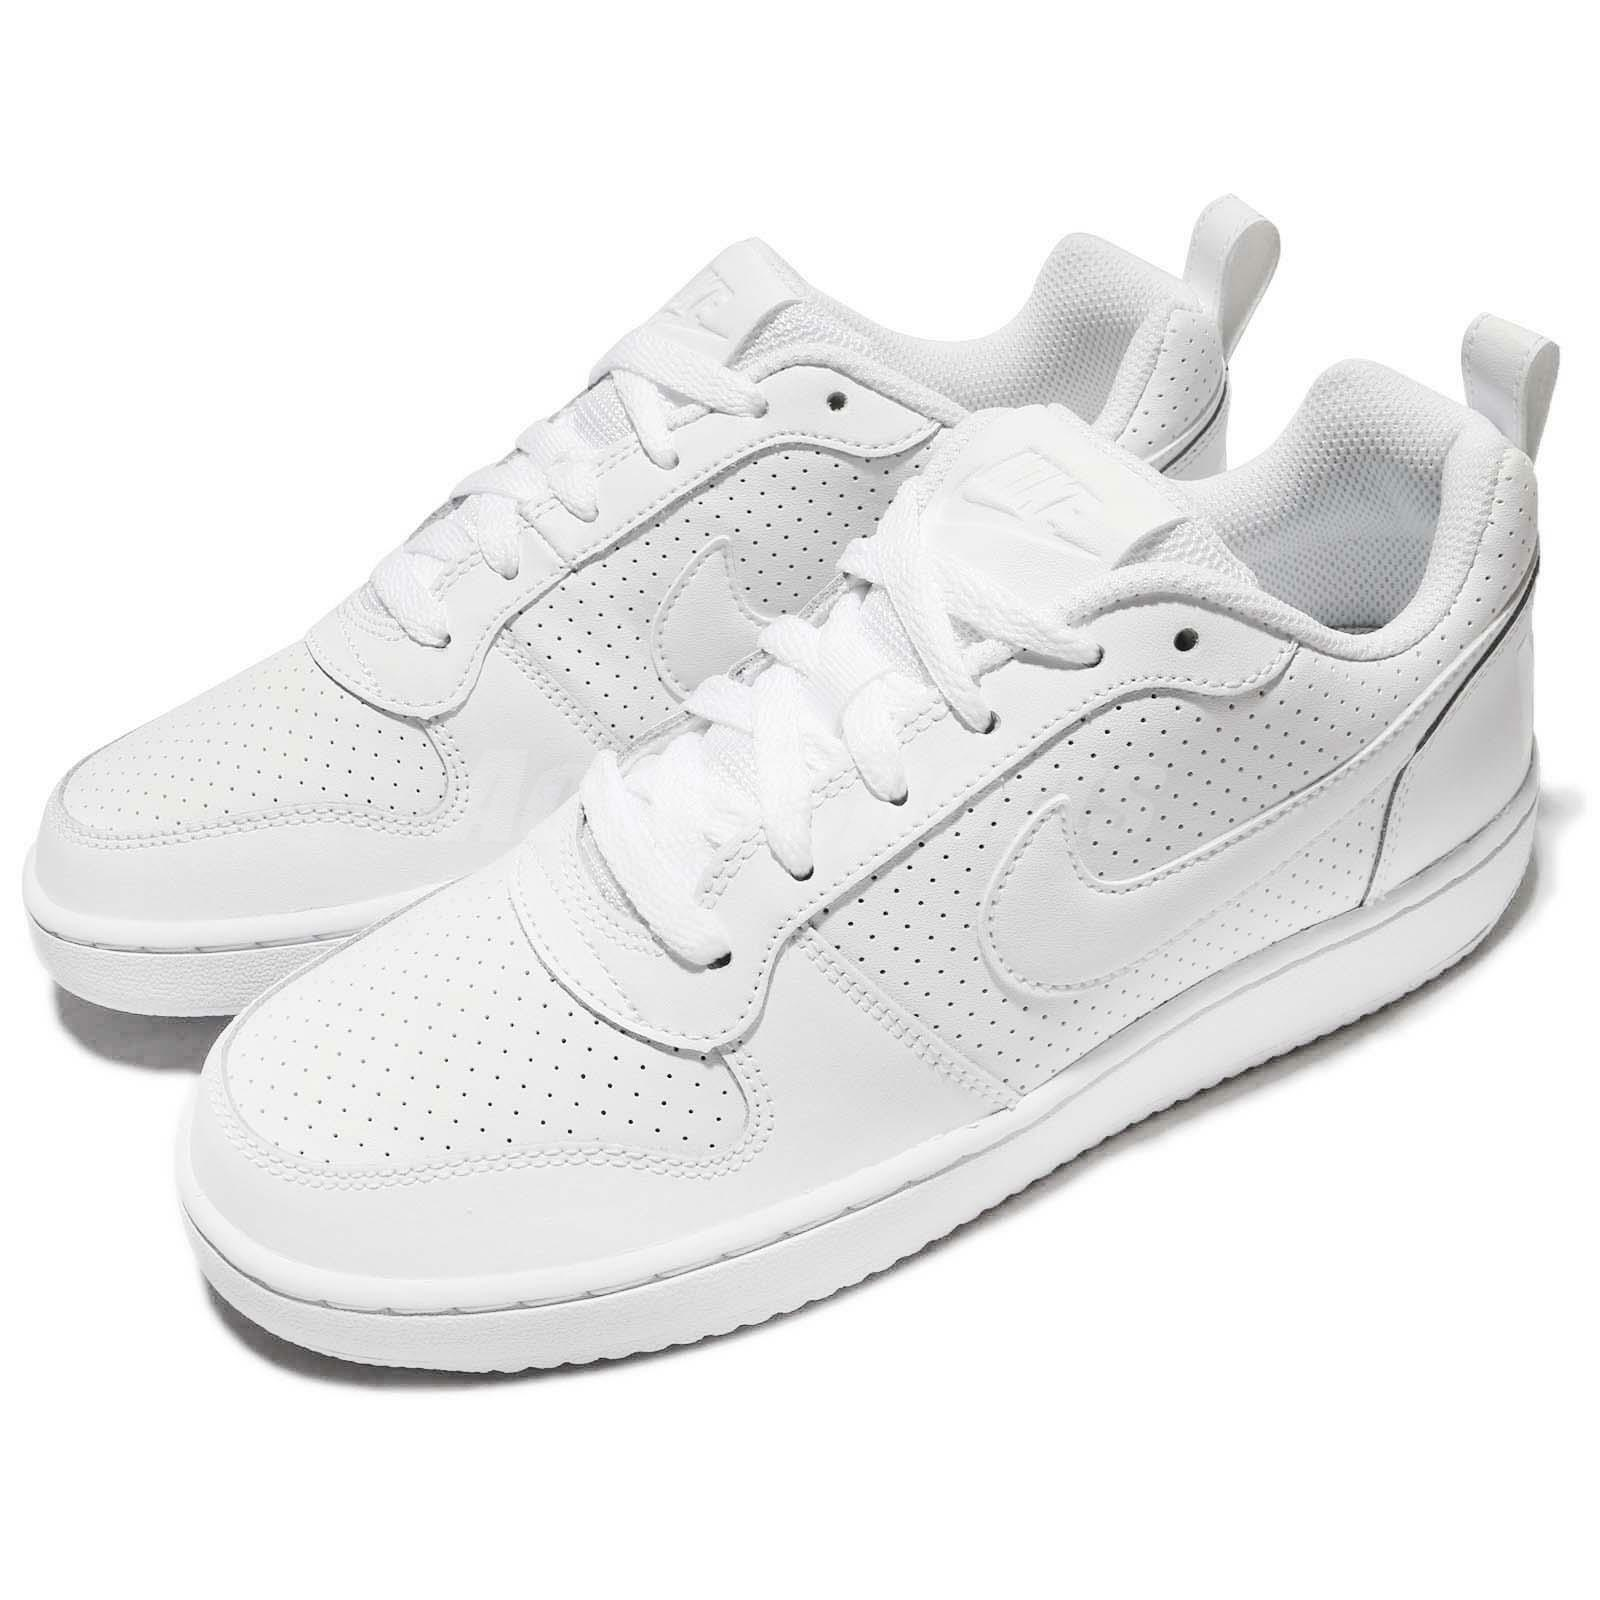 NIKE COURT BOROUGH LOW SNEAKERS WOMEN SHOES TRIPLE WHITE 844905-110 SIZE 11 NEW